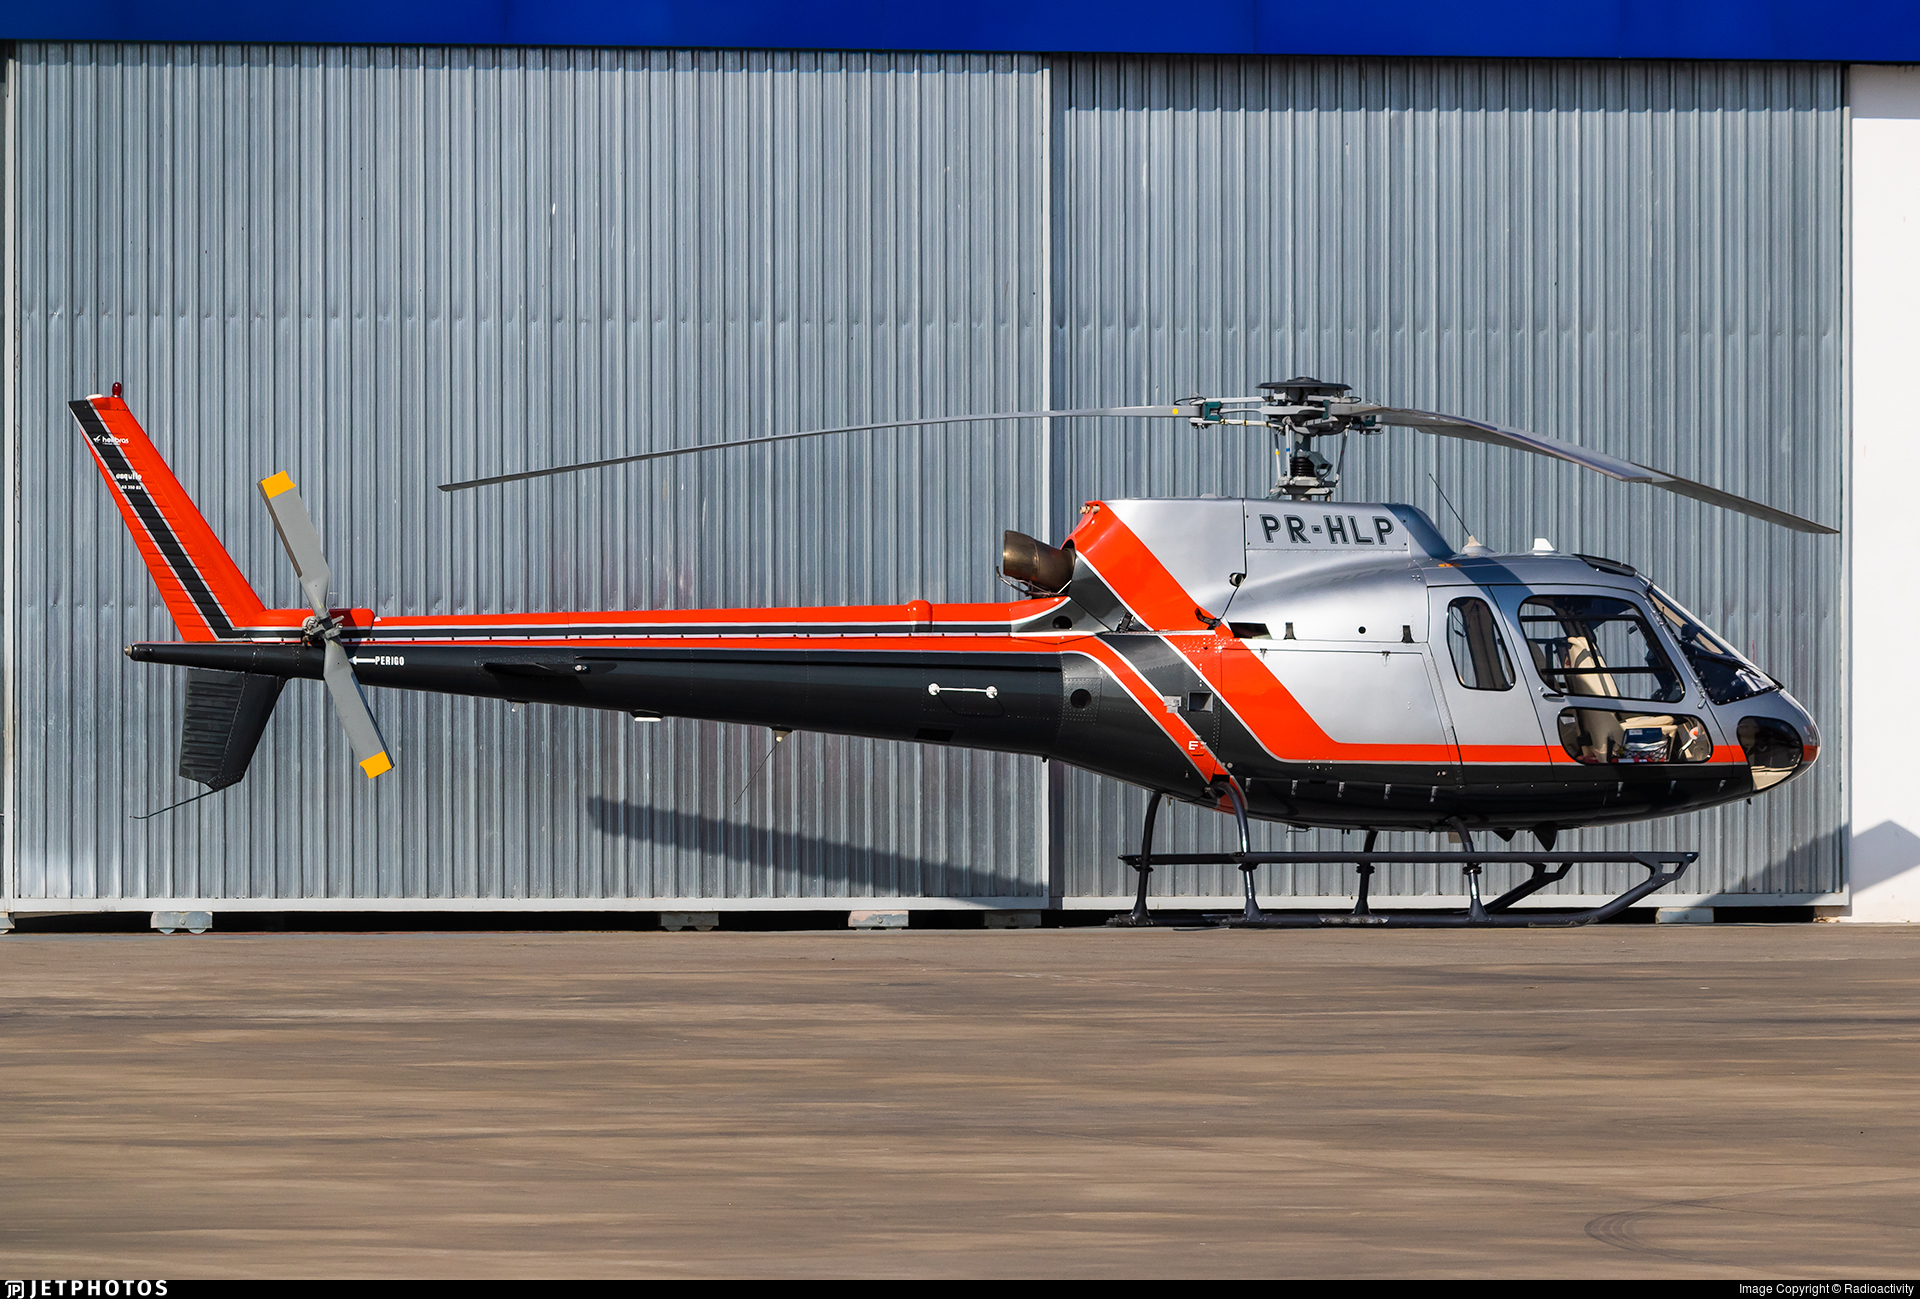 PR-HLP - Eurocopter AS 350B2 Ecureuil - Private